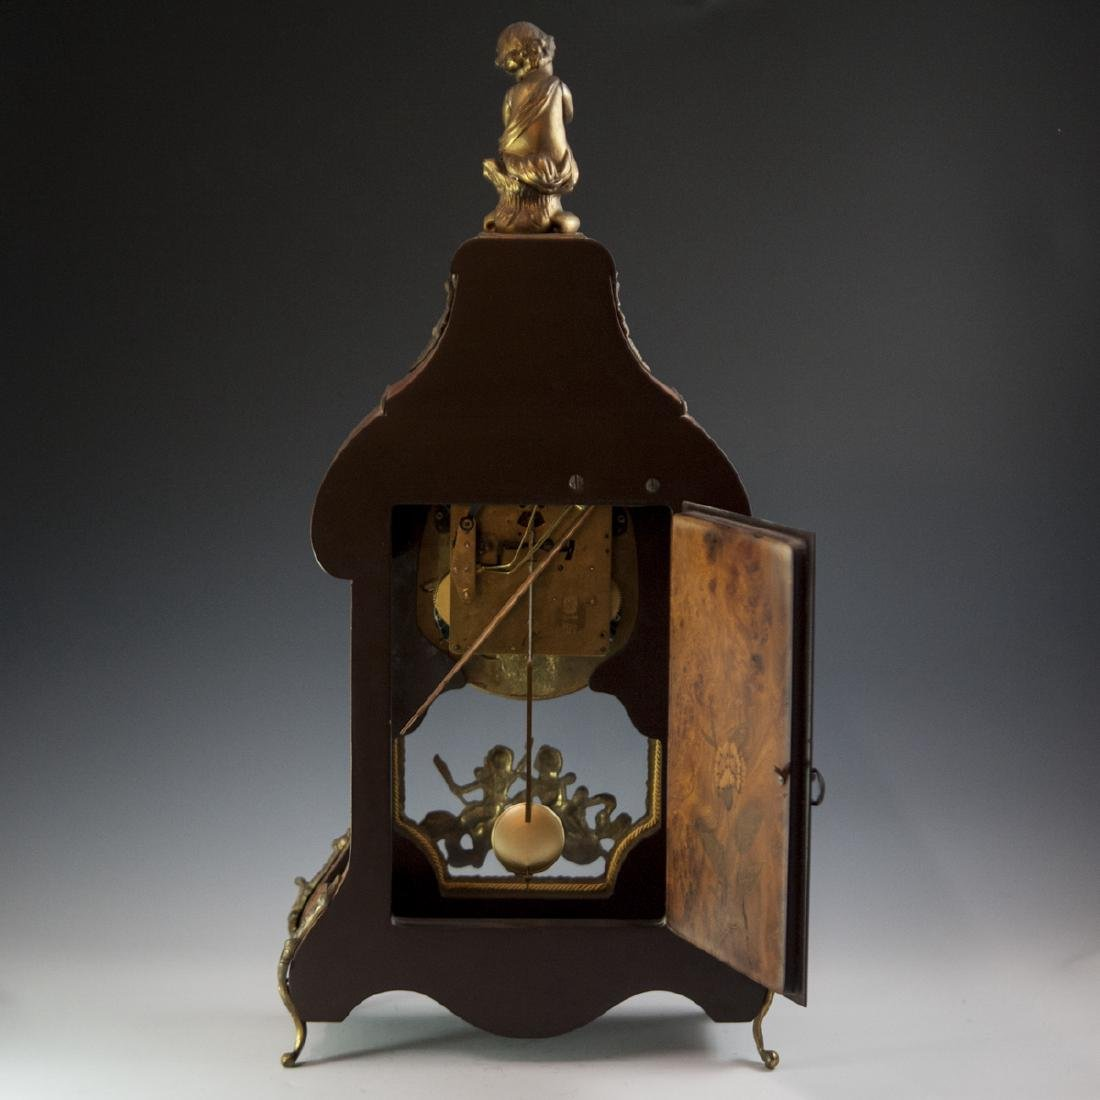 Franz Hermle and Sohn Marquetry & Bronze Mantel Clock - 2